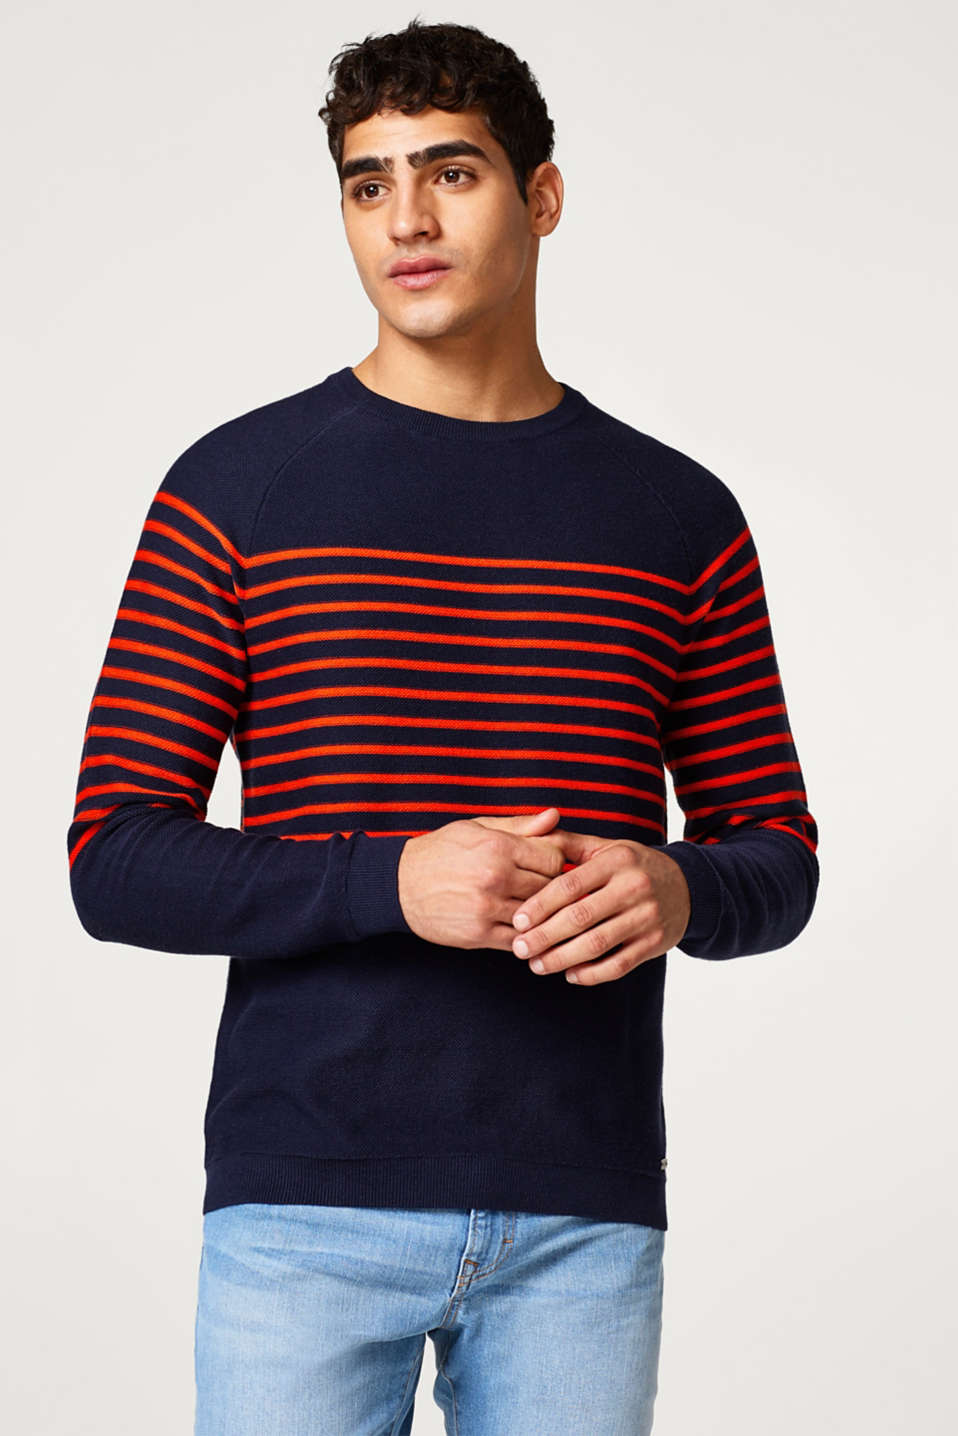 edc - Jumper in a striped look, in pure cotton